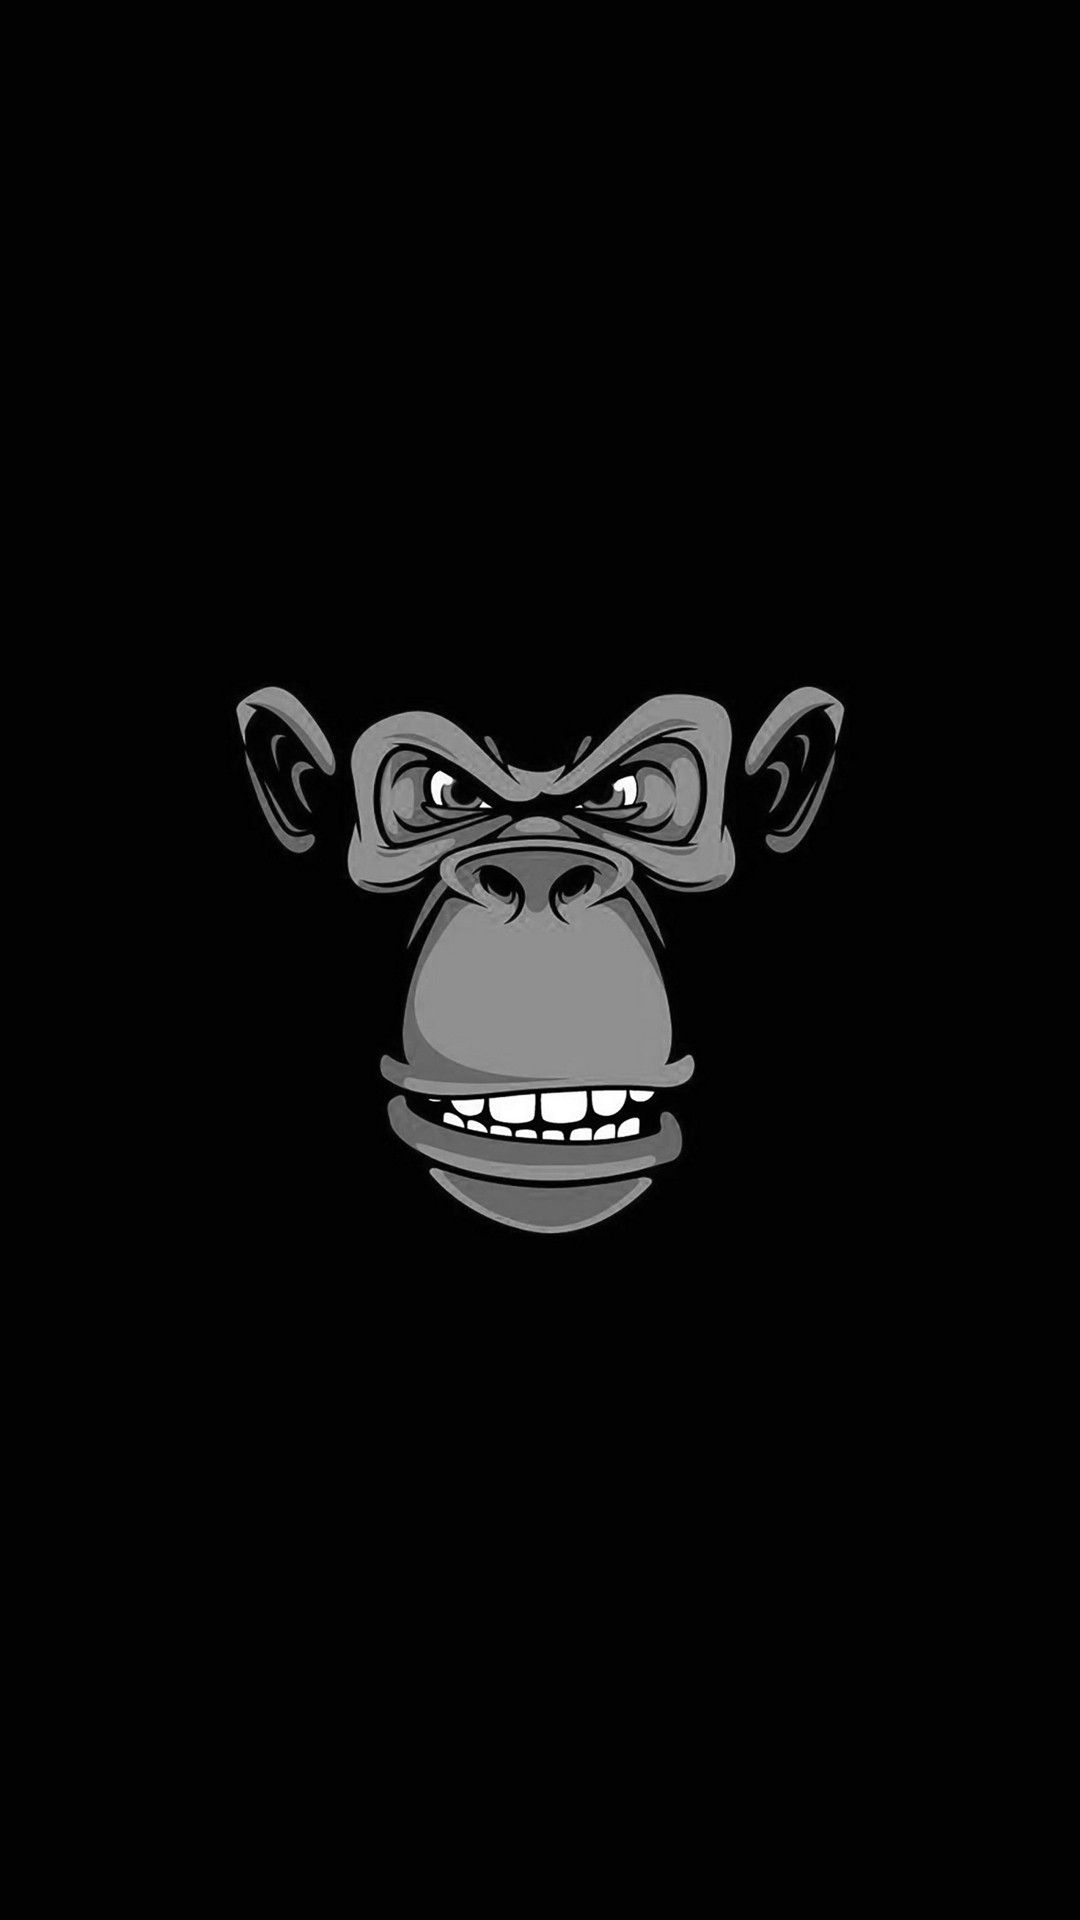 Evil Monkey iPhone Wallpaper